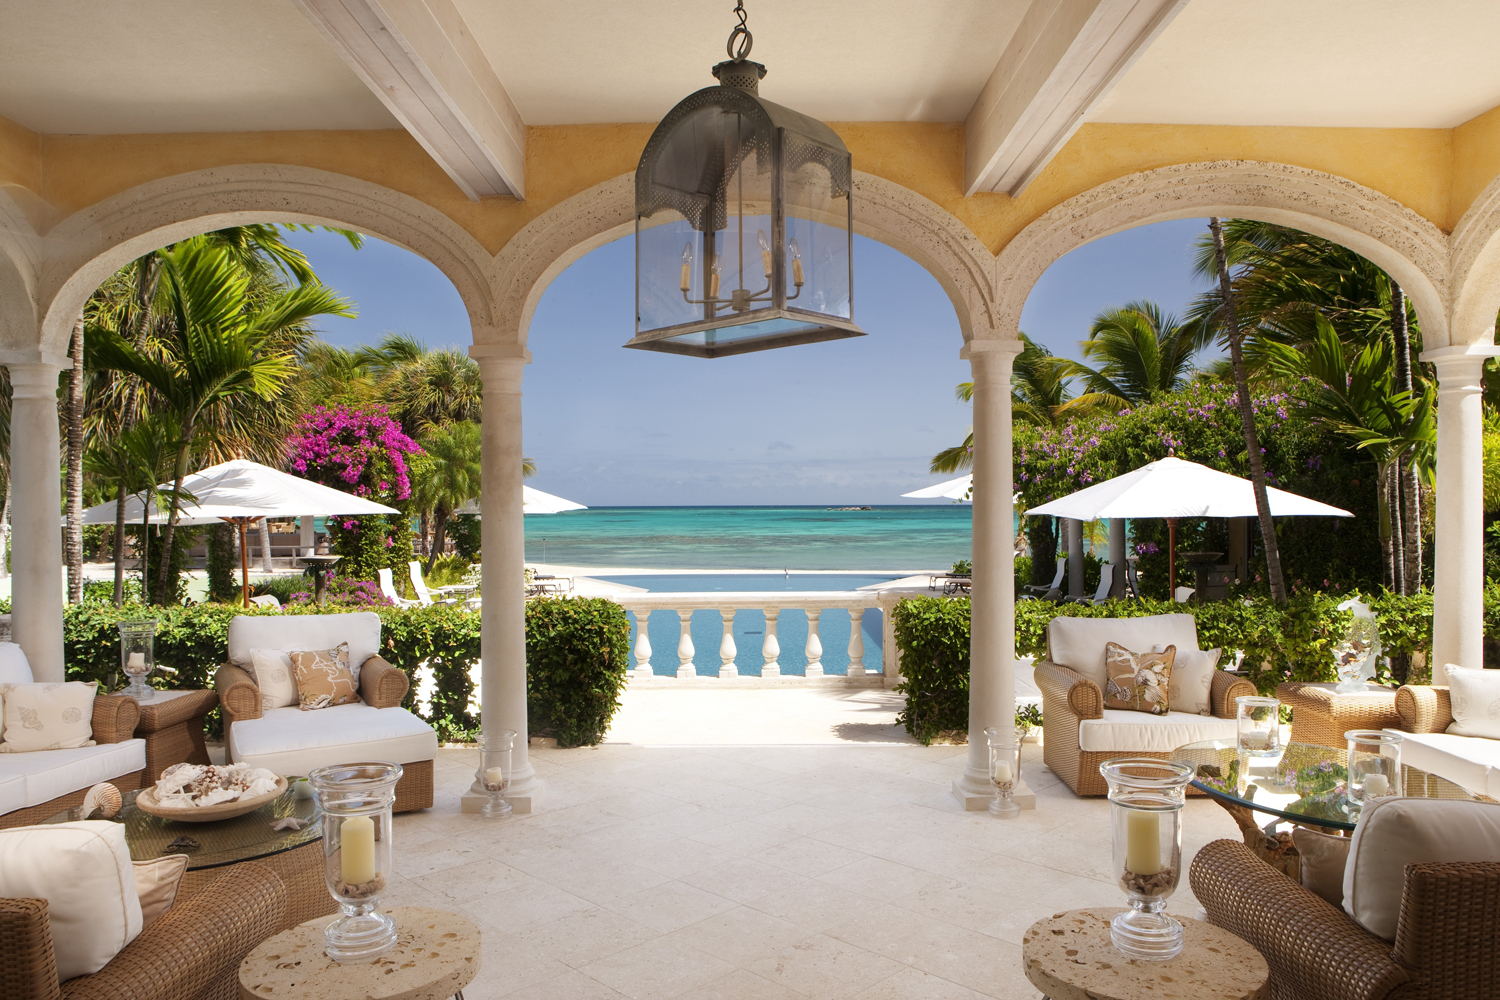 The 10 Best Hotels in the Caribbean 2016